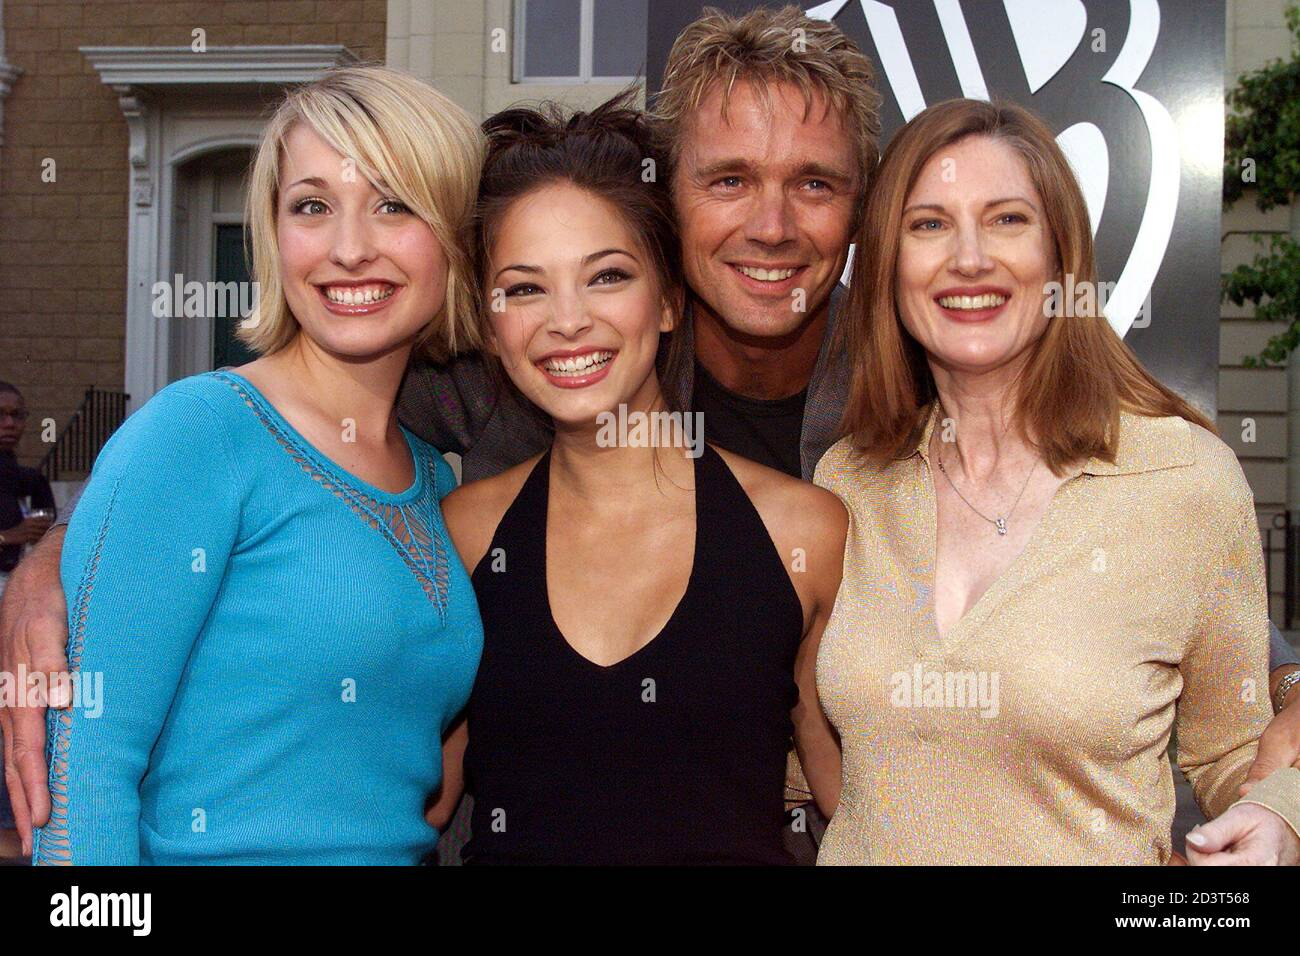 """Actor John Scheneider poses with co-stars (L-R) Allison Mack, Kristin Kreuk and Annette O'Toole from the new WB television network action series """"Smallvile""""  at the network's summer All-Star party at the Warner Bros. Studios in Burbank, California, July 15, 2001. The series depicts the classic Superman character as a teenaged Clark Kent. Stock Photo"""